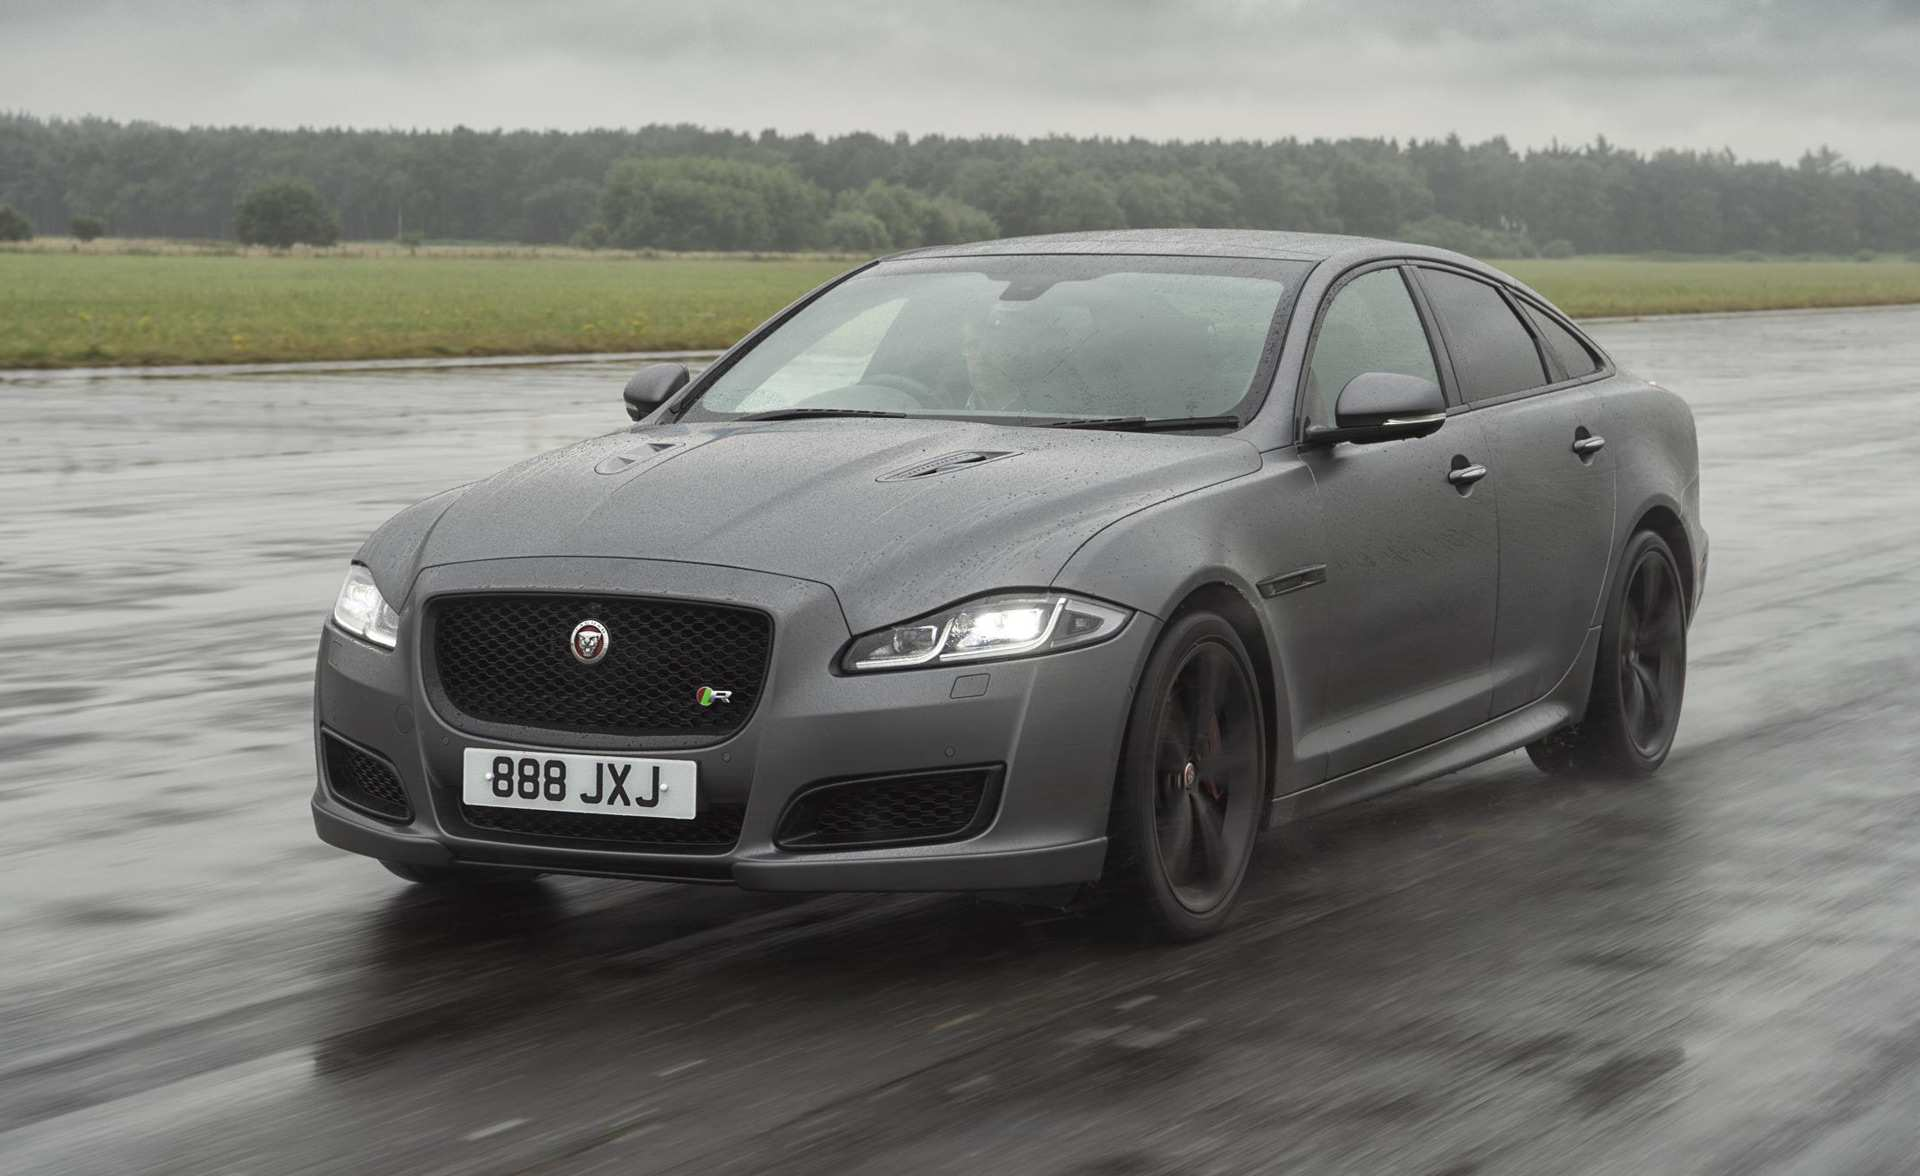 47 All New 2020 Jaguar Xj Release Date Review And Release Date